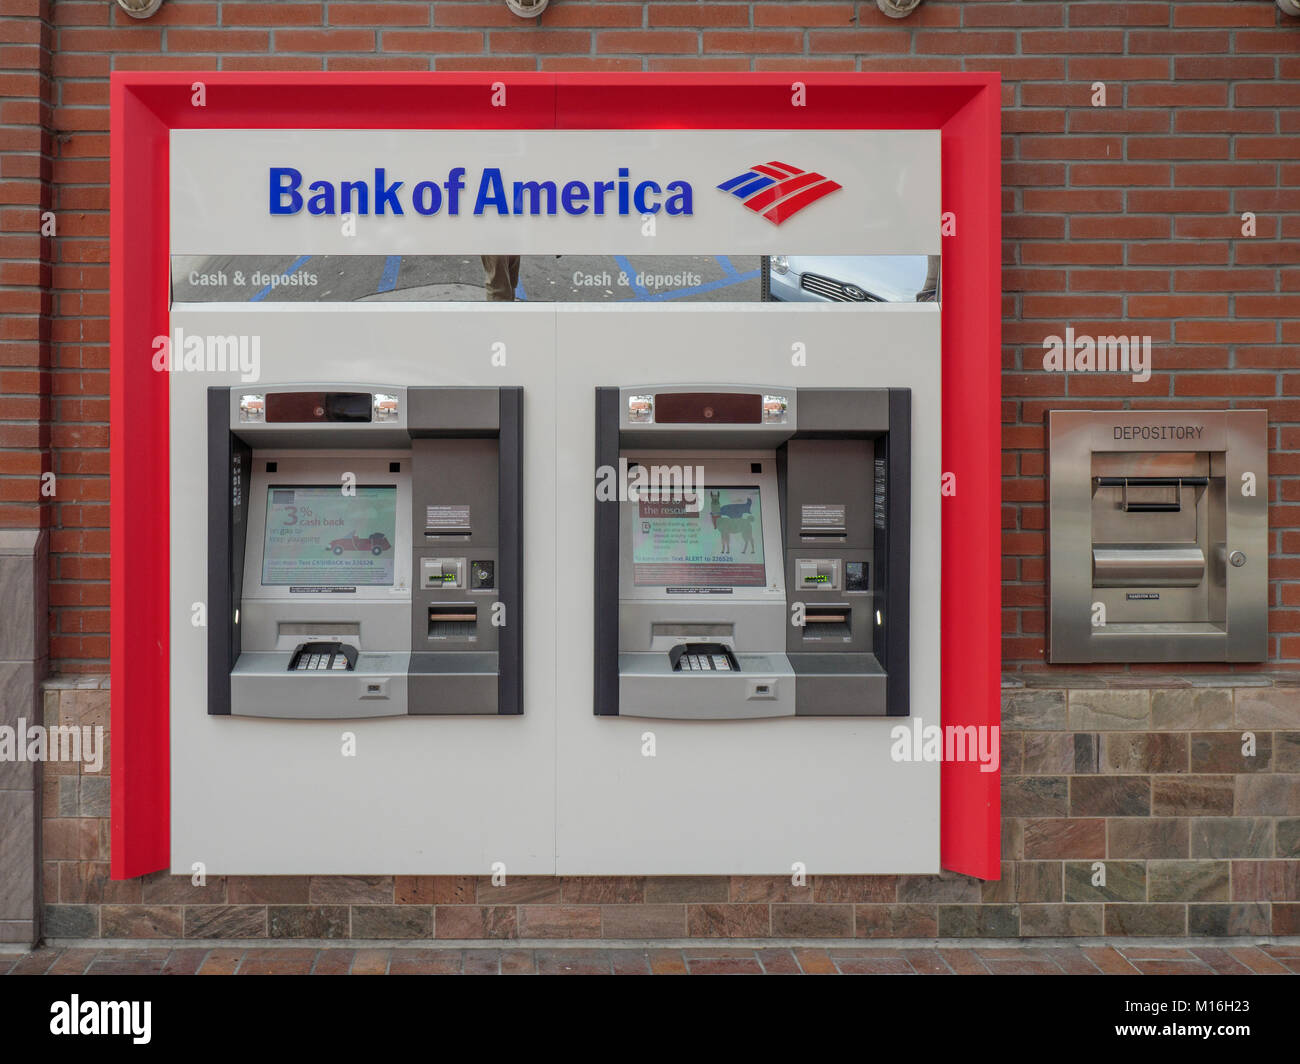 Bank Of America ATM Cashpoint Machines In A Brick Wall Gaslamp Quarter San Diego California United States Of America - Stock Image